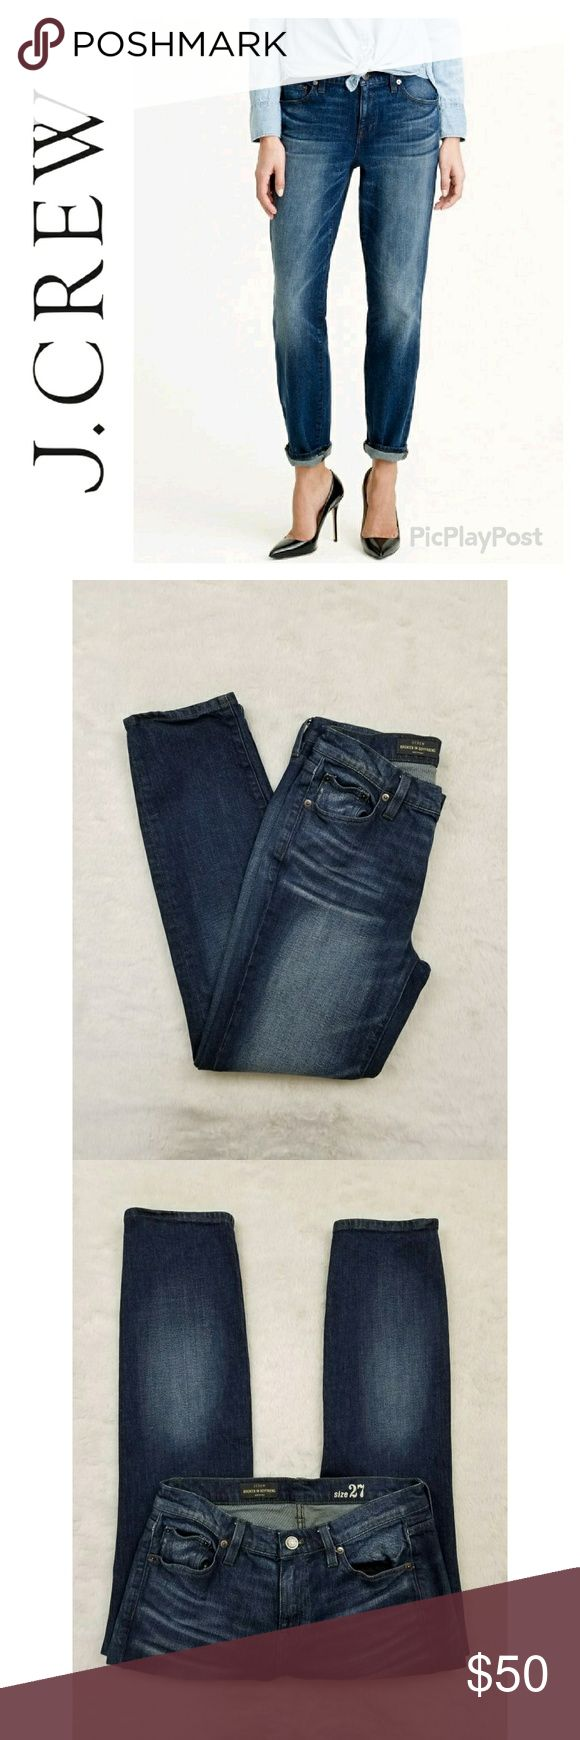 "NAME YOUR PRICE J. Crew Broken in Boyfriend Jean J. Crew Broken in Boyfriend jean in Freddie wash. Sits lower on hip. Relaxed through hip and thigh, with an easy, straight leg. Size 27. Inseam approximately 29"" Excellent pre-owned condition. No visible flaws. J. Crew Jeans"